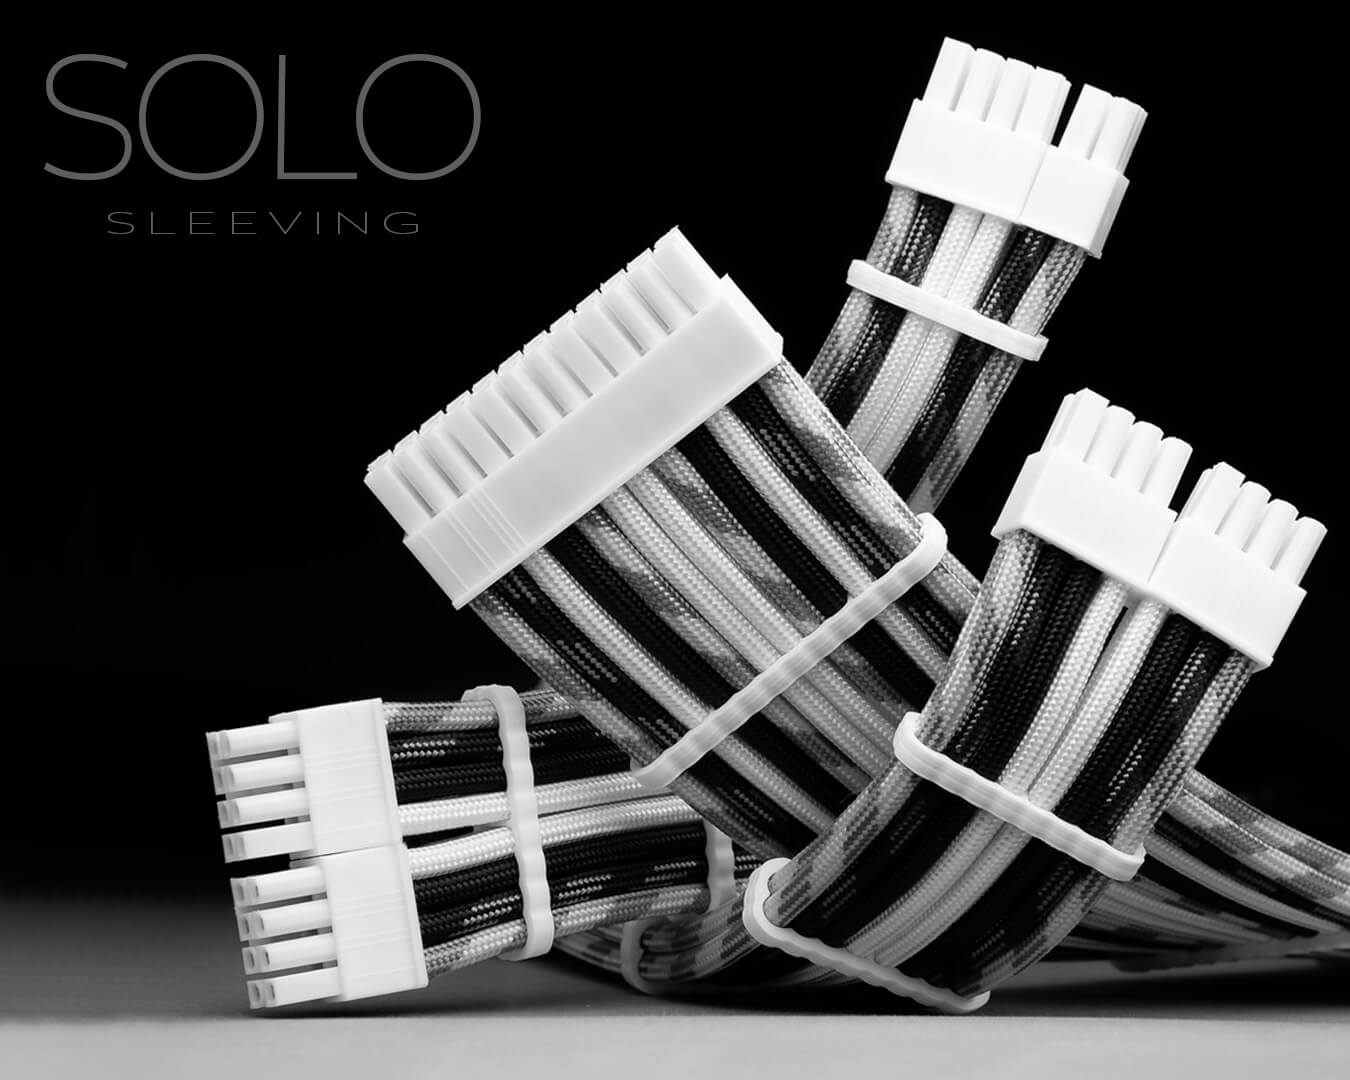 Black and White Sleeved Modular Cables for Sponsorship